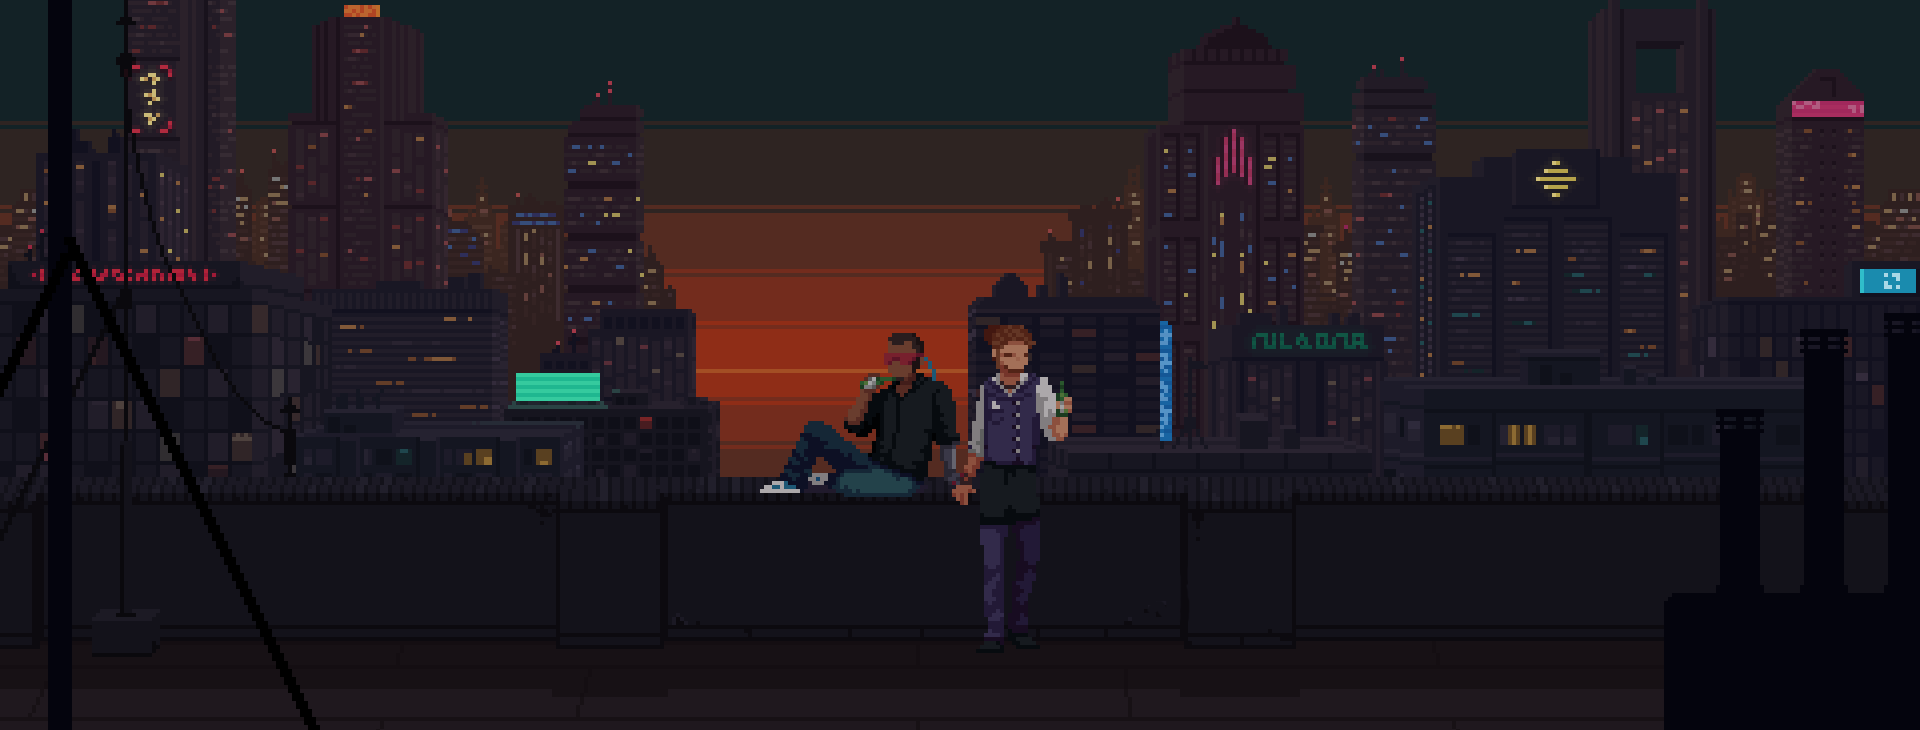 A Cyberpunk Game Where You Manipulate People With Alcohol